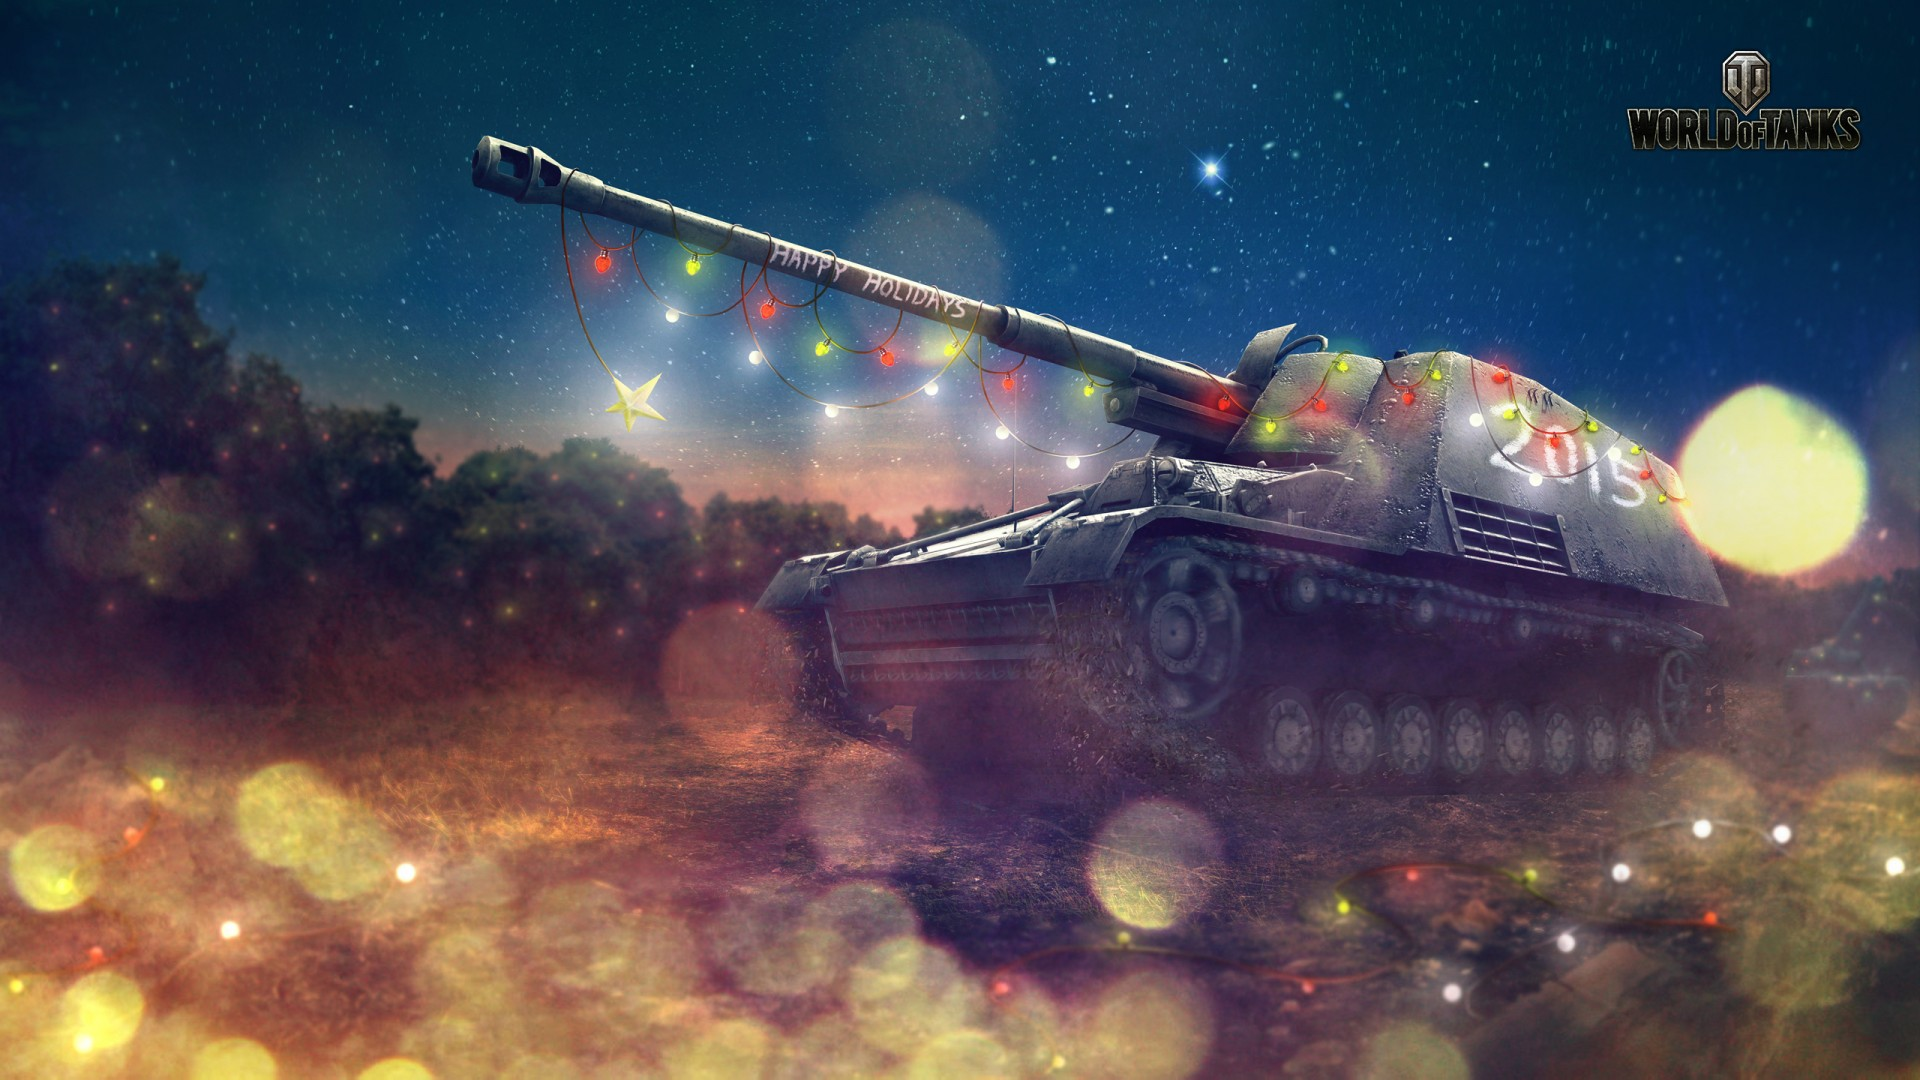 Happy New Year Wallpaper Iphone 6 World Of Tanks Holidays Wallpapers Hd Wallpapers Id 15844